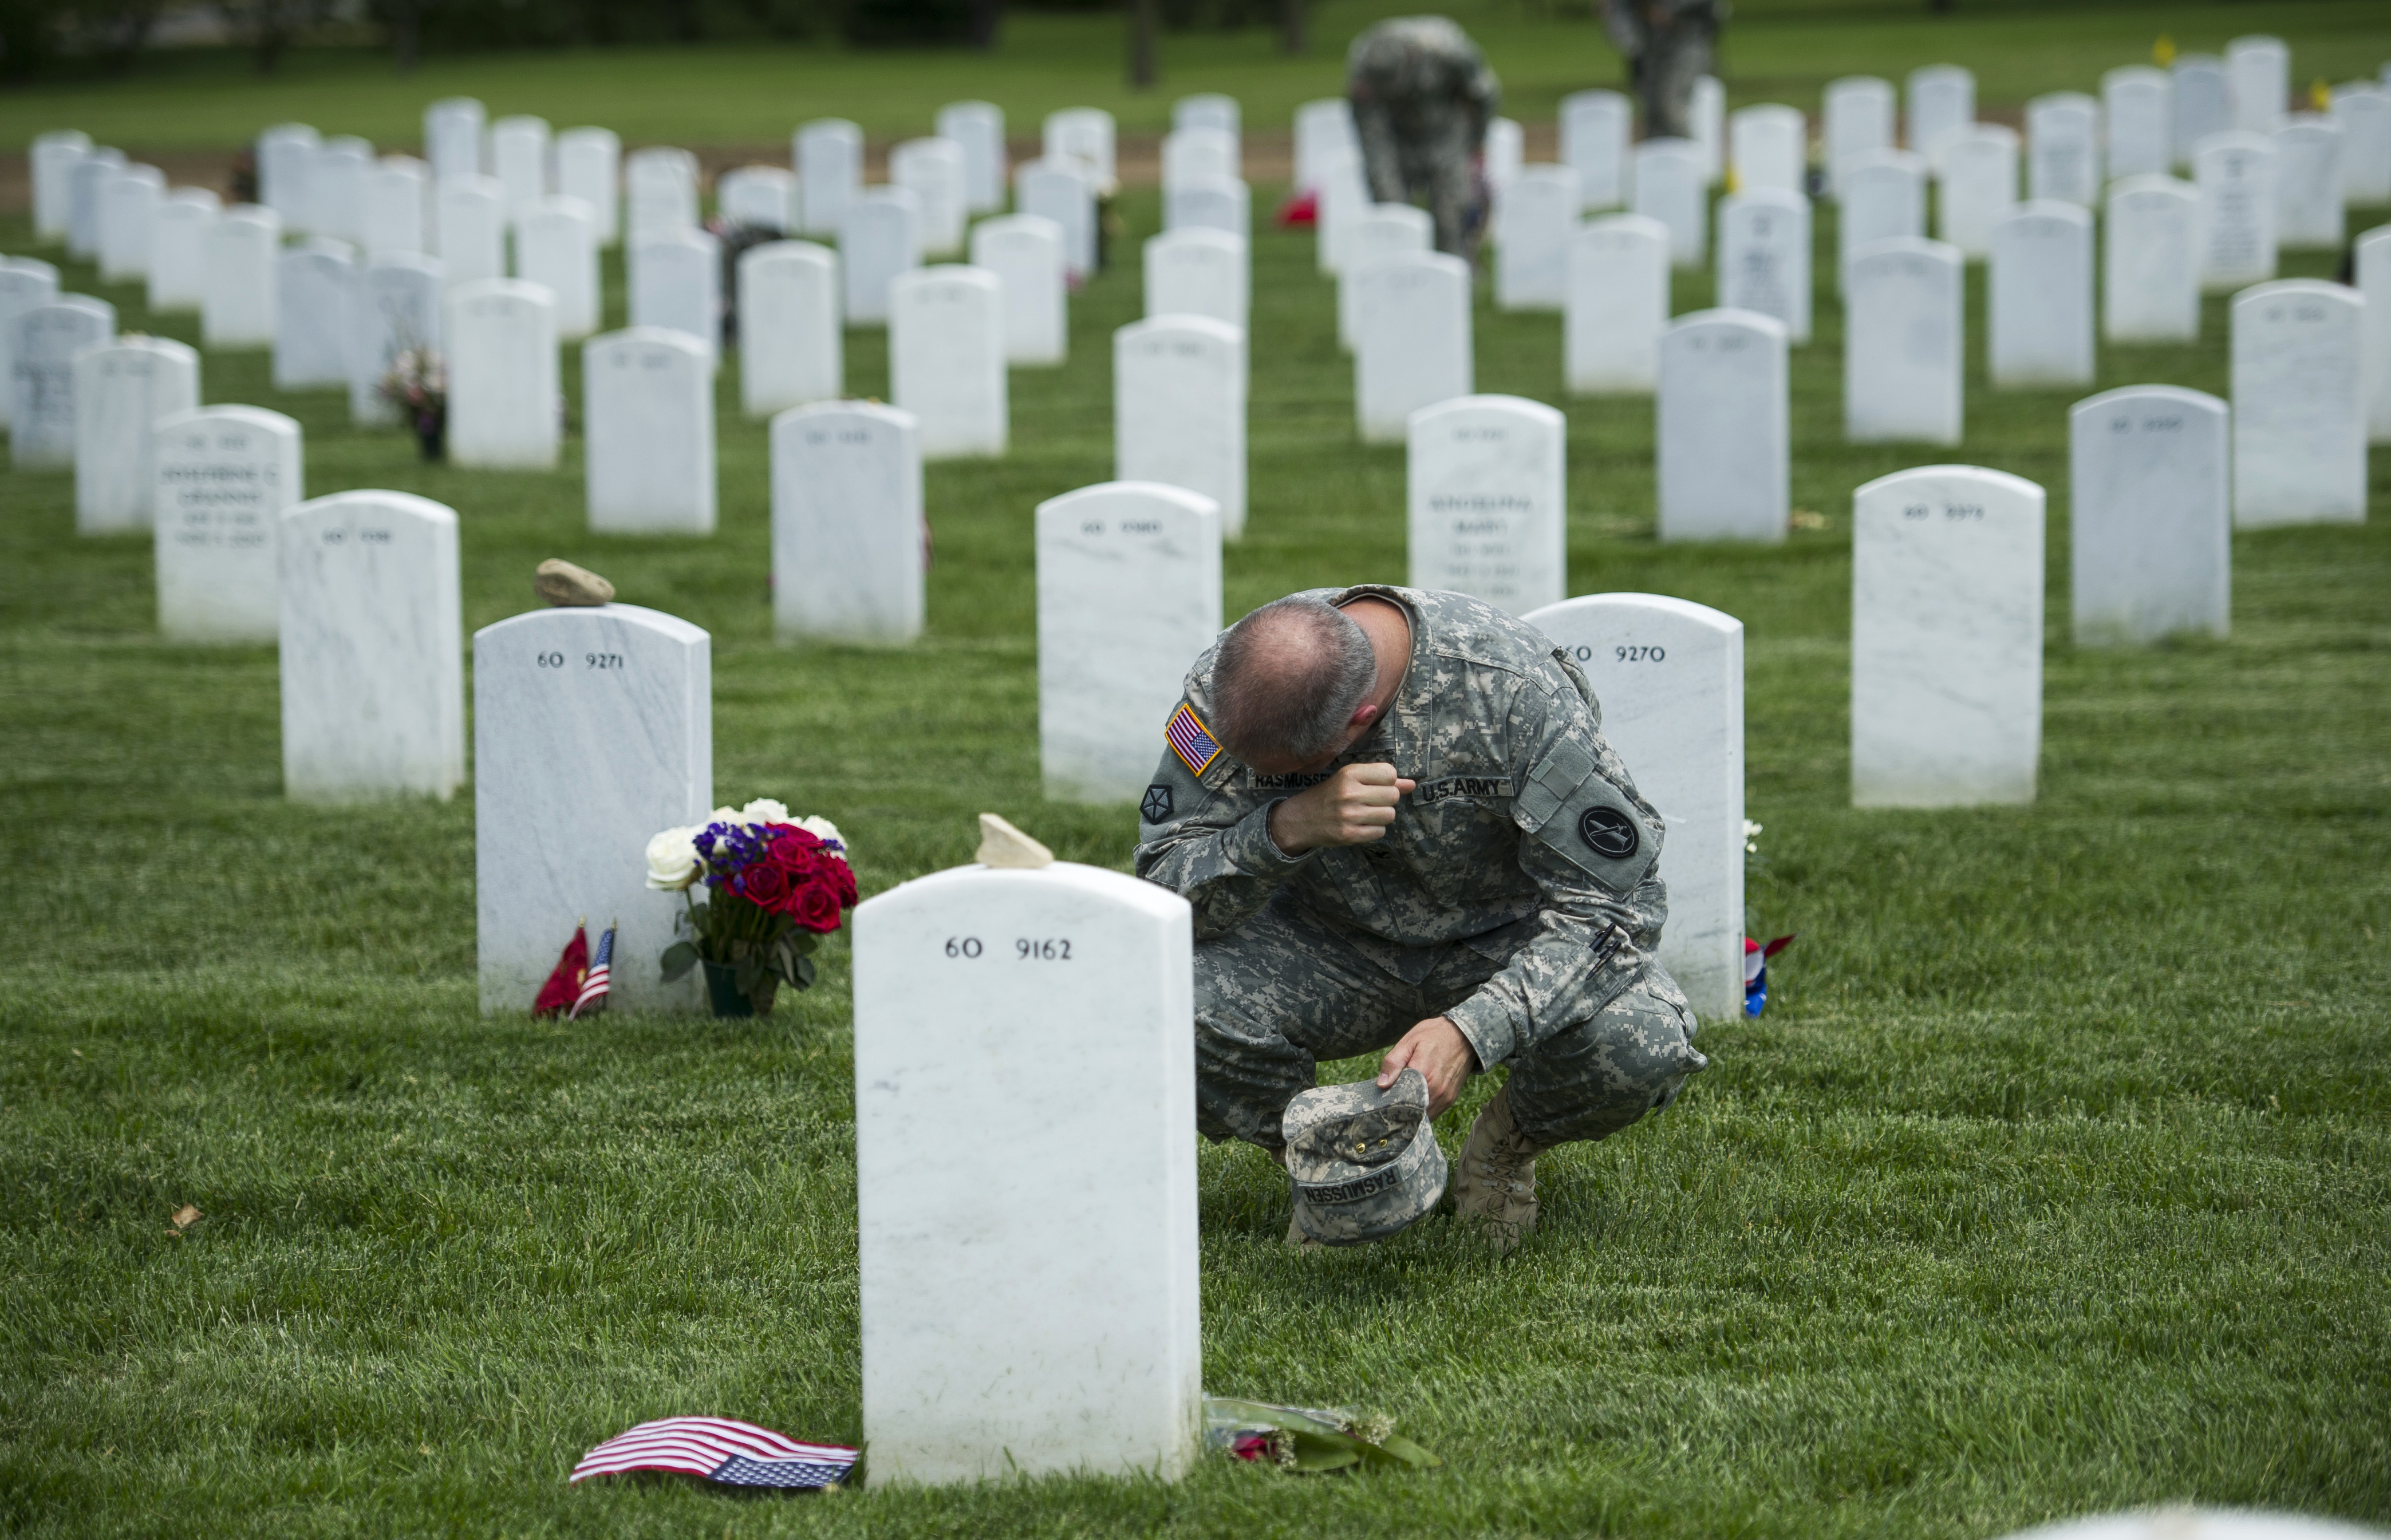 Westlake Legal Group AP975538855243 Vice President Mike Pence: This Memorial Day our freedoms are cherished even more. Here's why Mike Pence fox-news/us/personal-freedoms/proud-american fox-news/us/personal-freedoms/america-together fox-news/opinion fox-news/health/infectious-disease/coronavirus fox news fnc/opinion fnc baf97324-955d-53c8-9bac-7ced86de5317 article